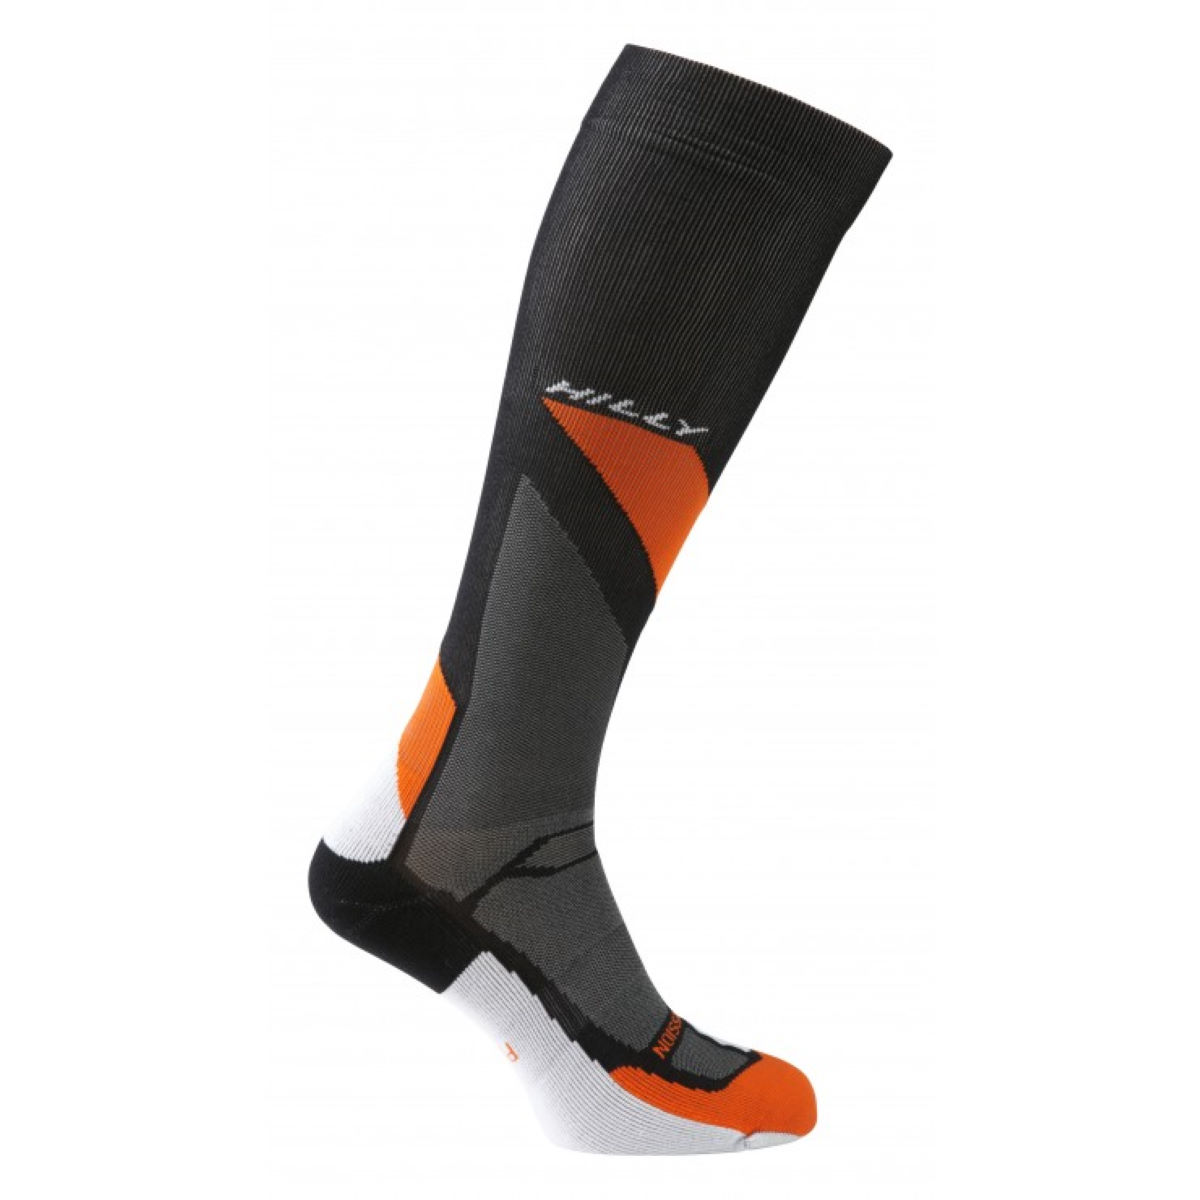 Chaussettes Hilly Marathon Fresh Compression - L Noir/Orange